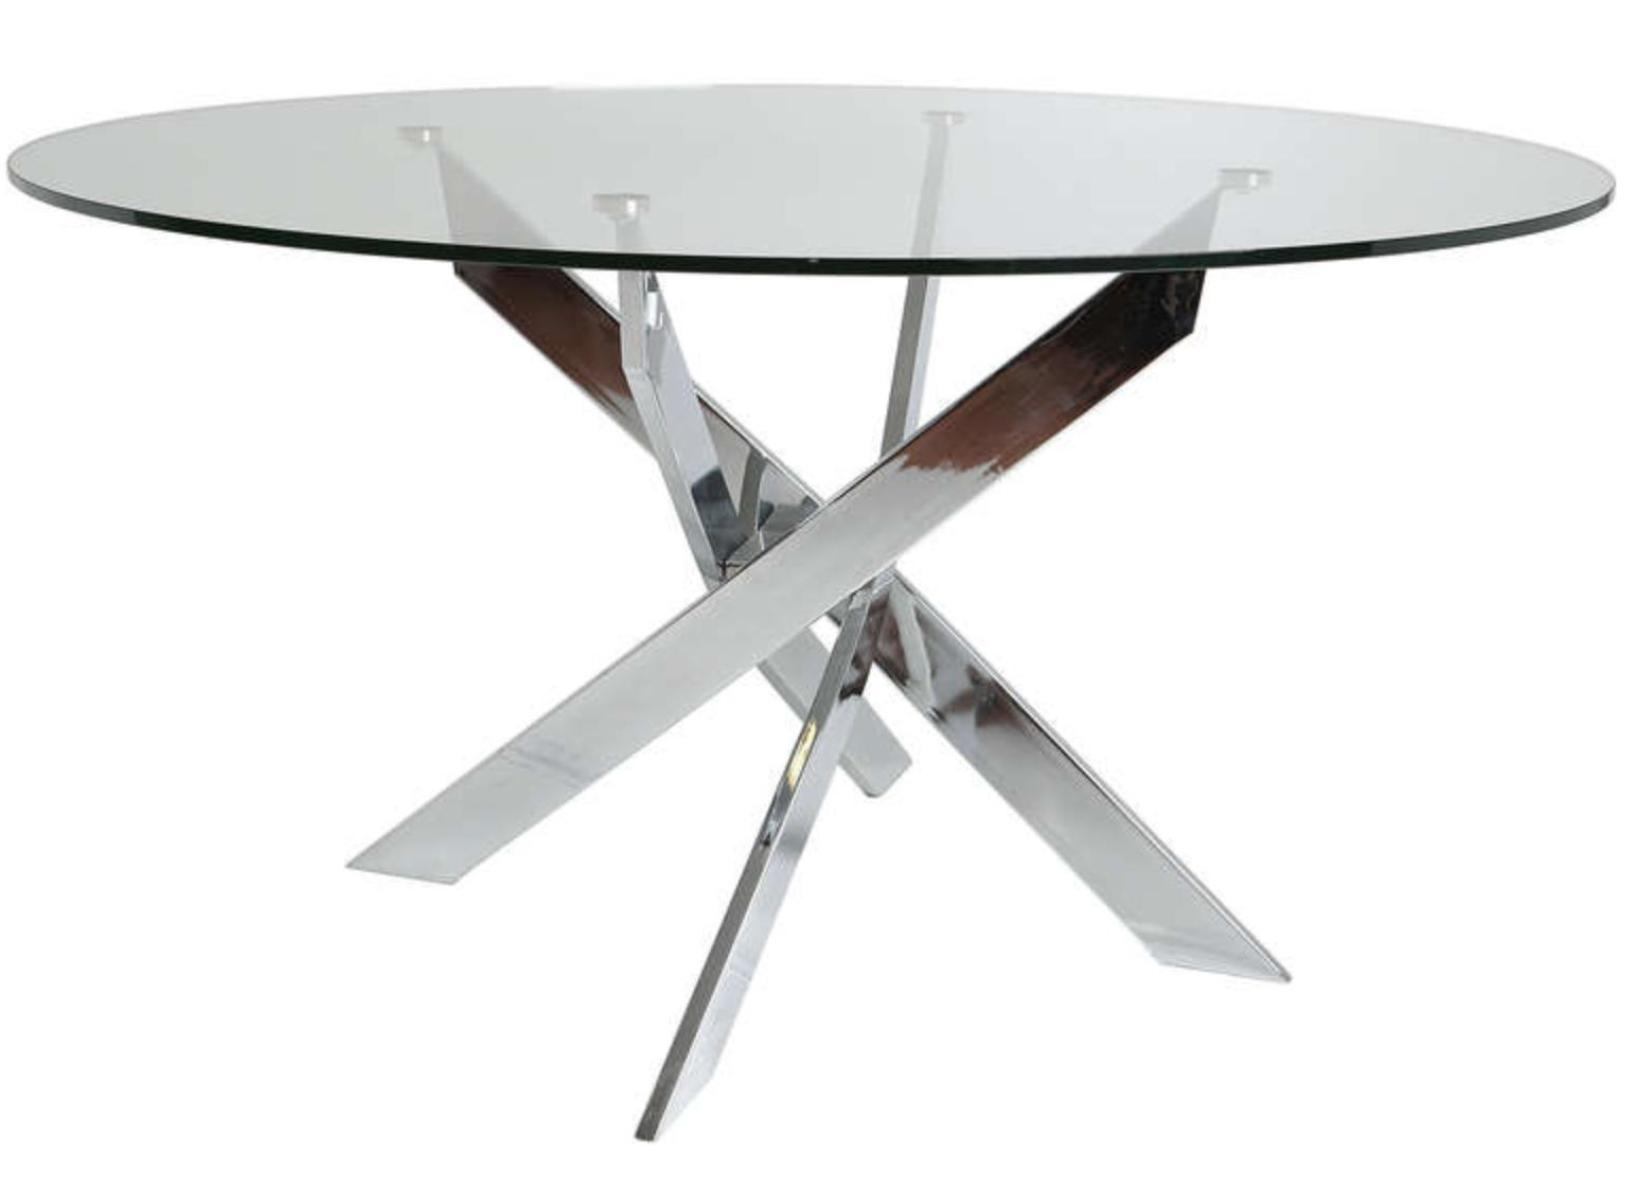 Table de cuisine ronde en verre de maison manger table - Tables rondes en verre ...